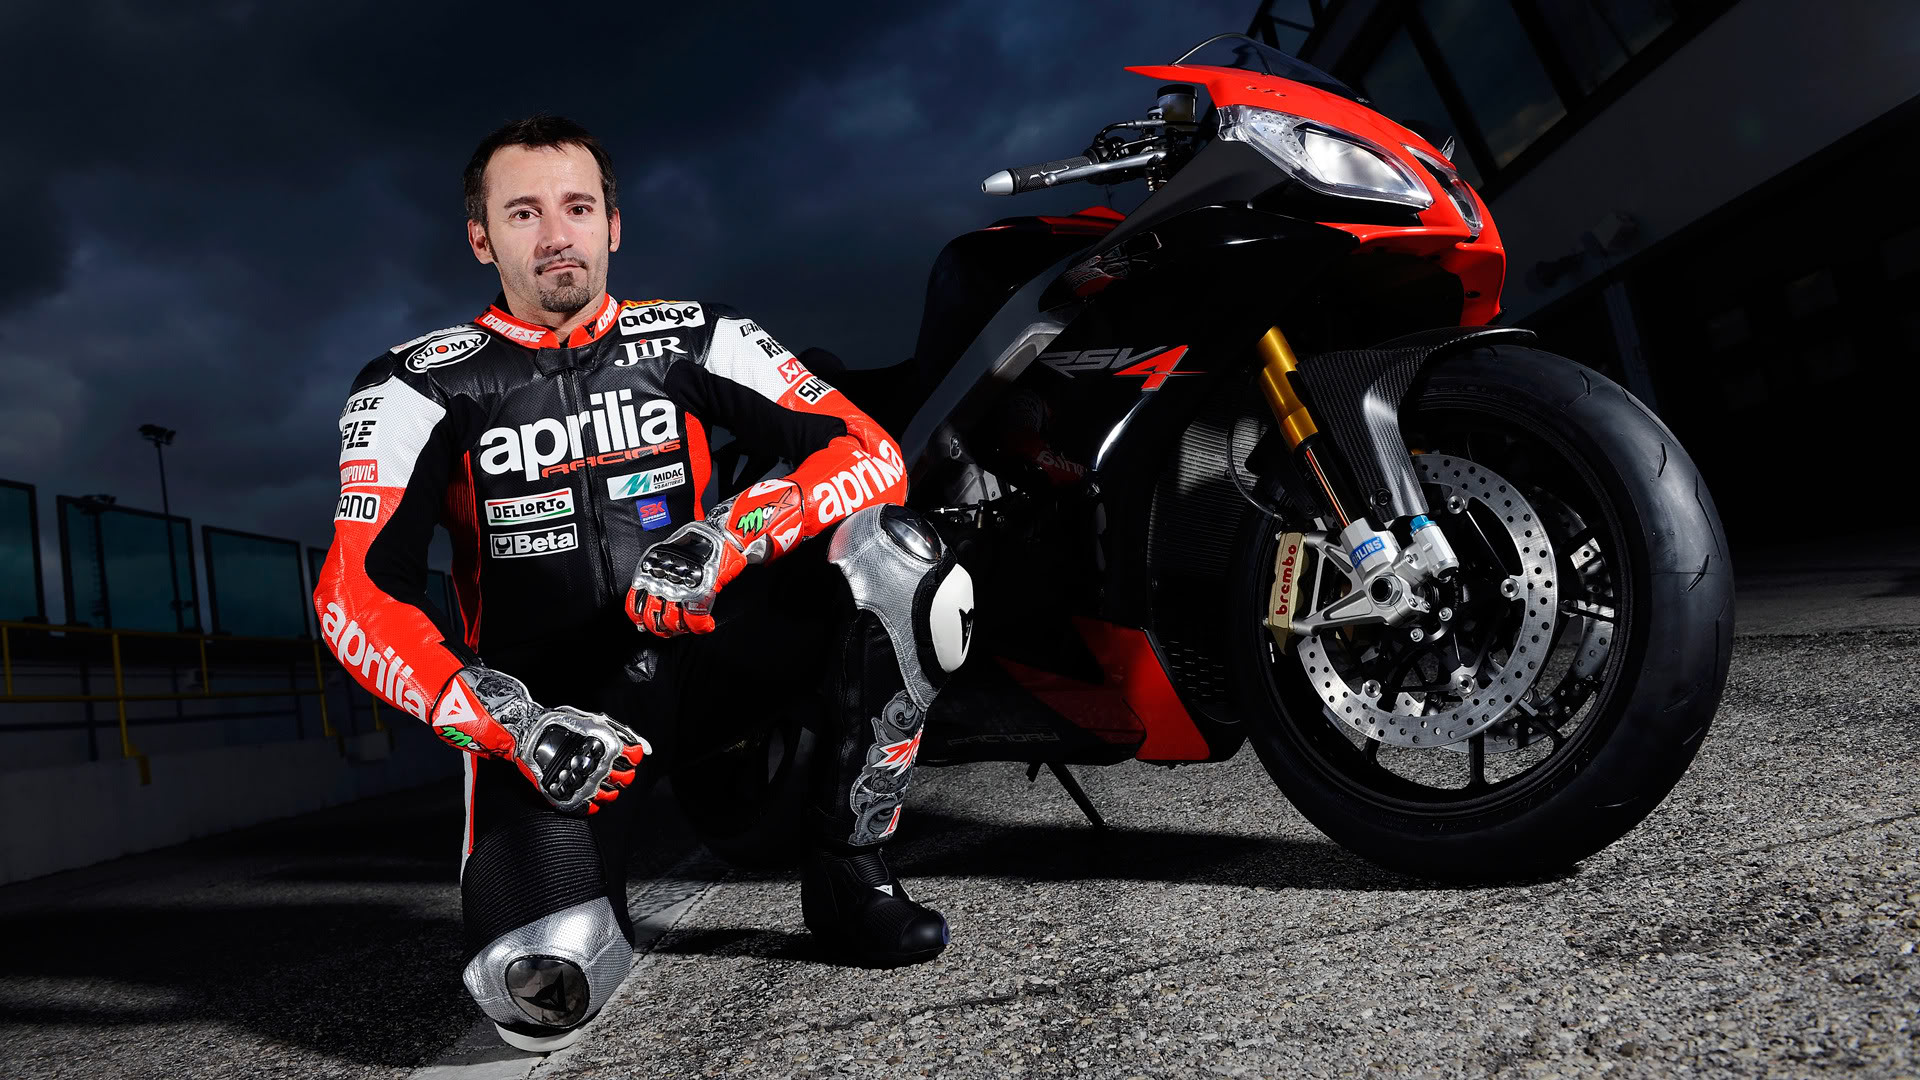 Biaggi knows how to breed